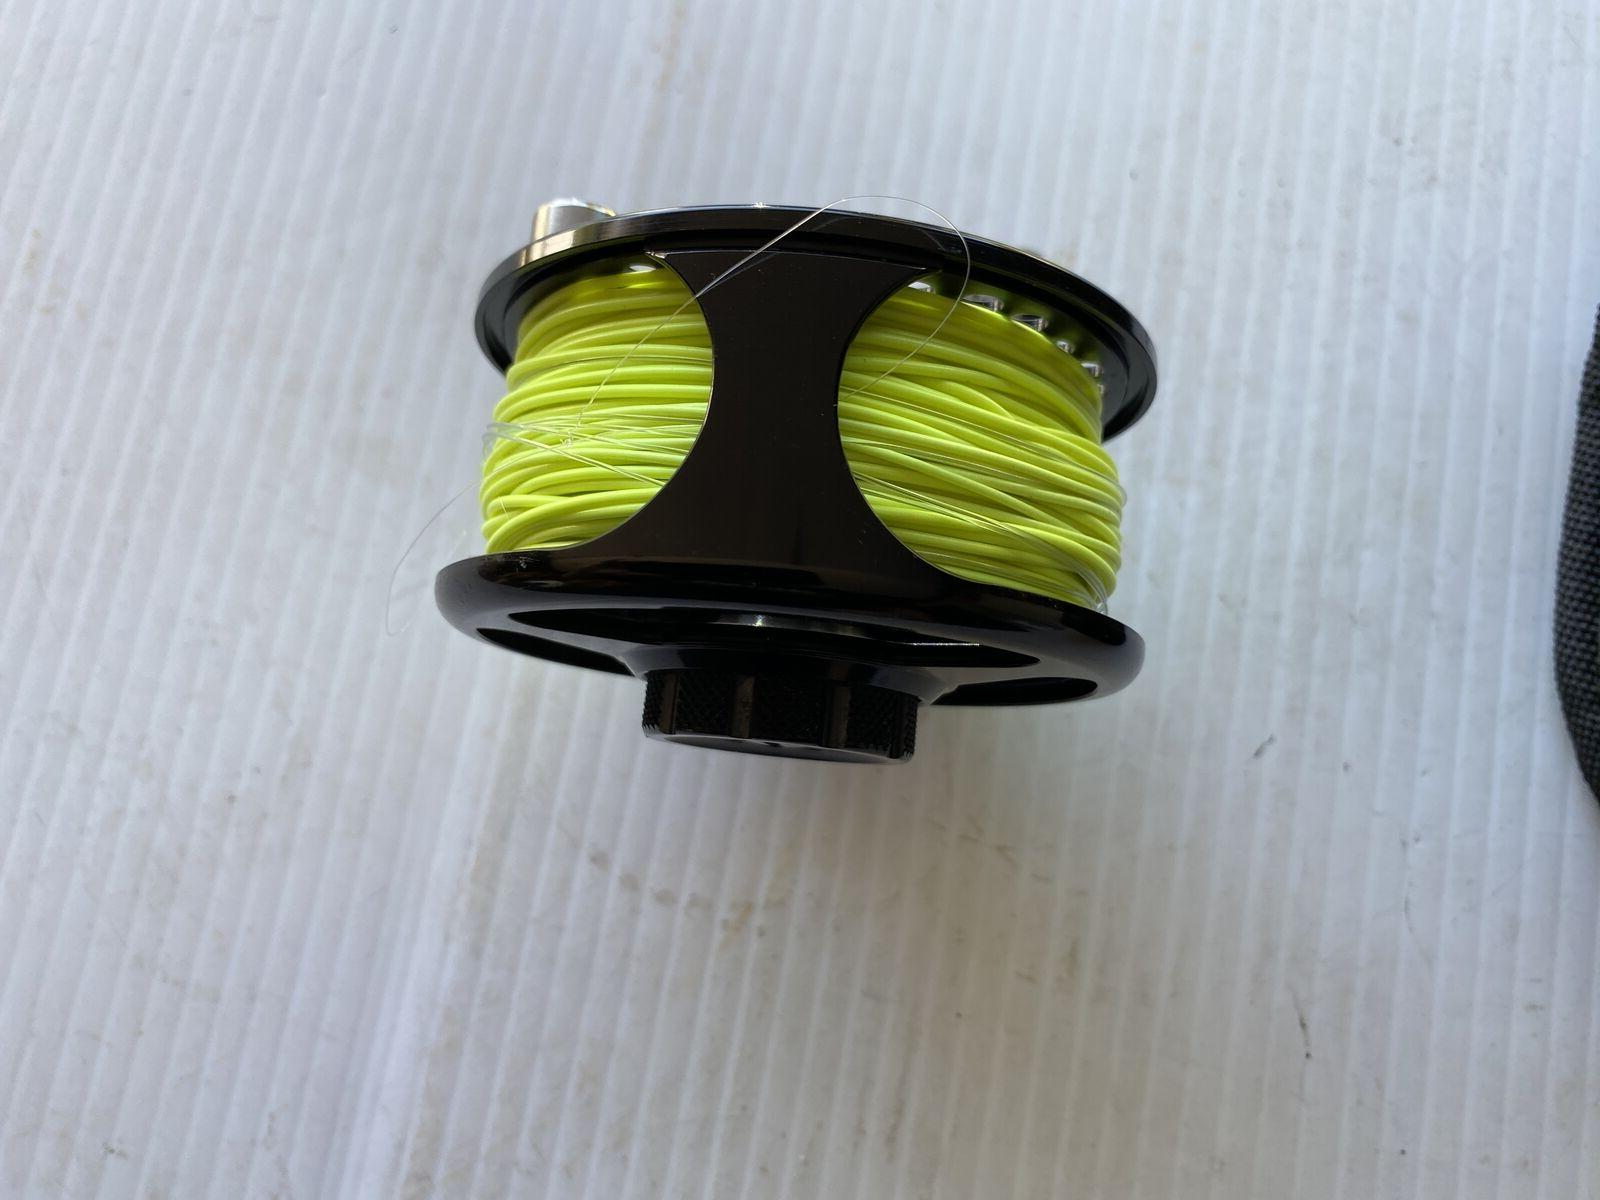 Cabela's RLS1 Reel With Fly Line and Case